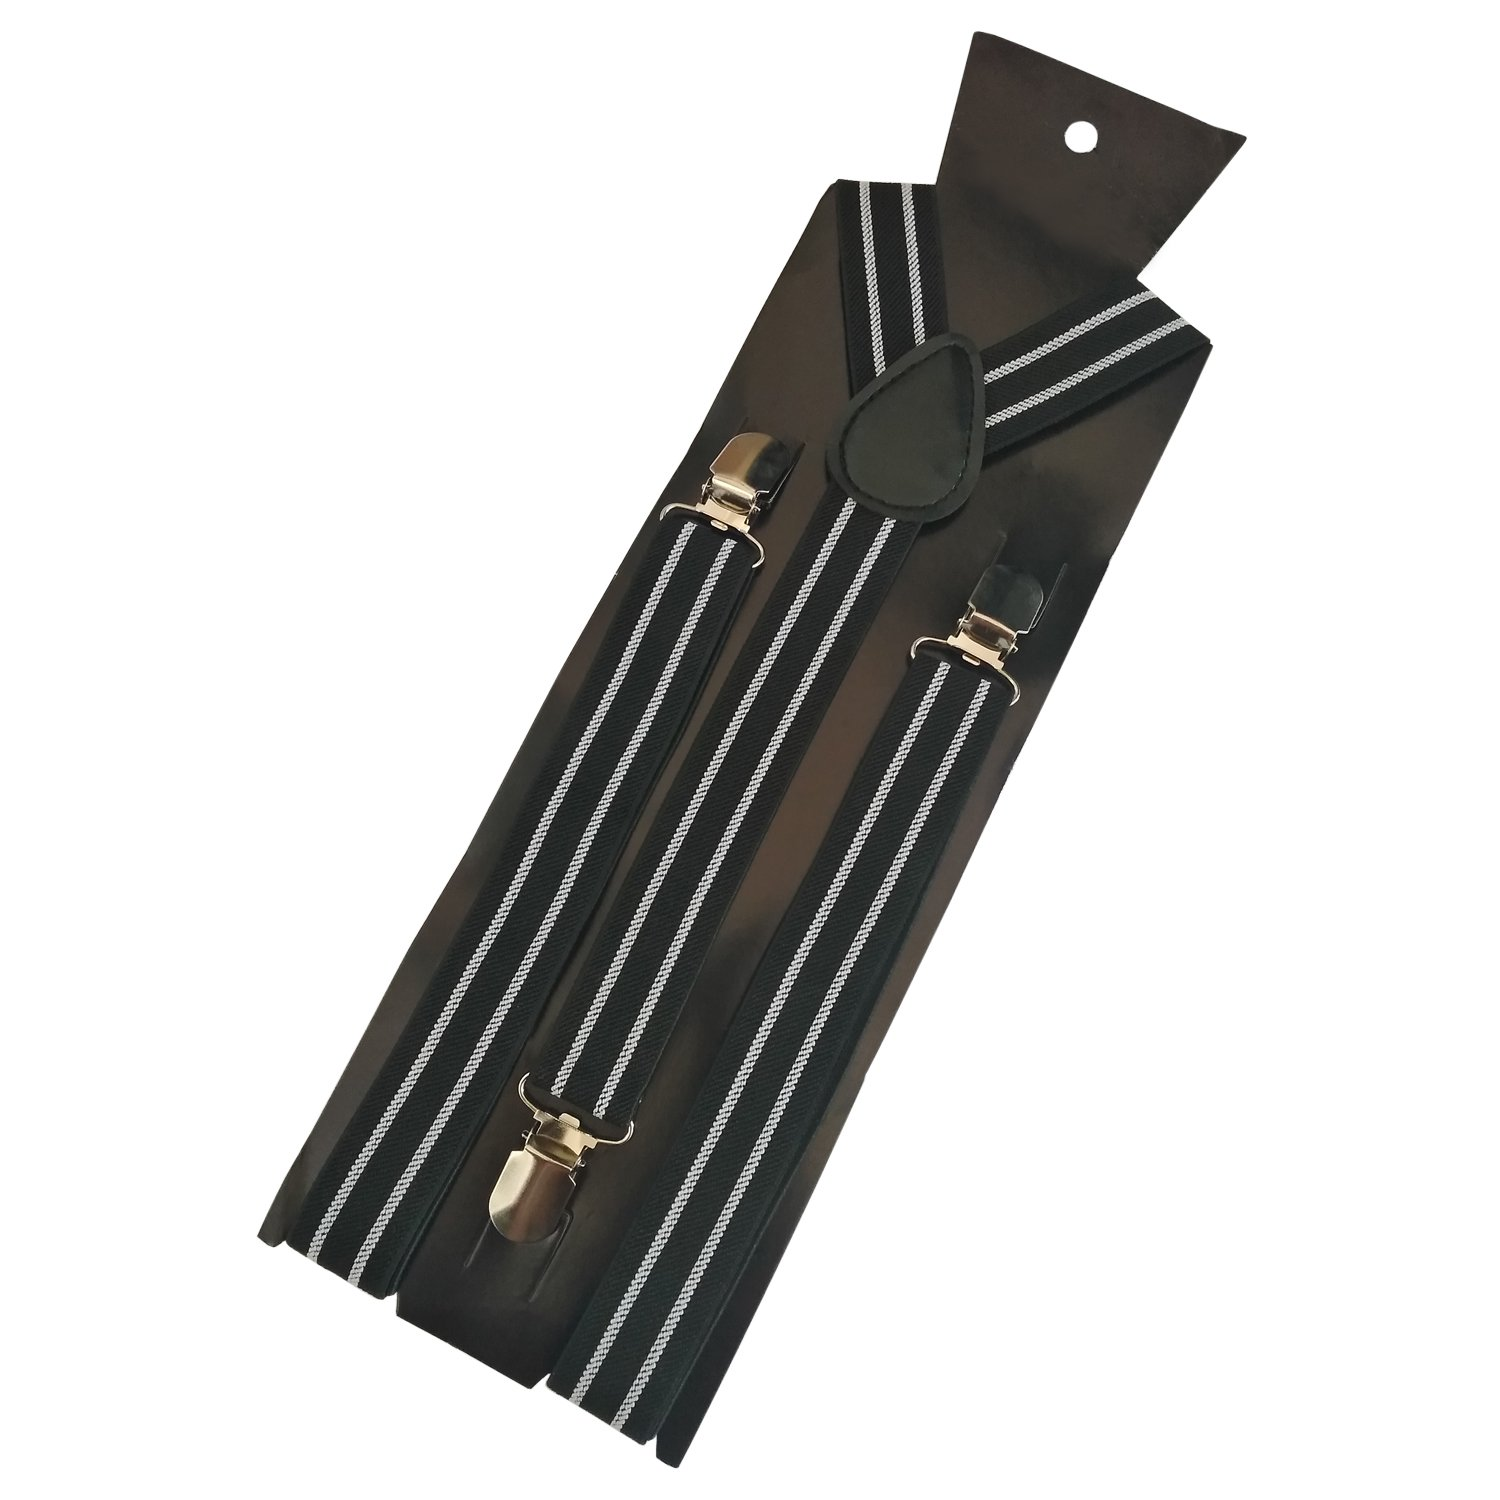 YUNEE Gentlemen Suspenders Solid Color Metal Clips Adjustable Elastic Shoulder Straps (d)